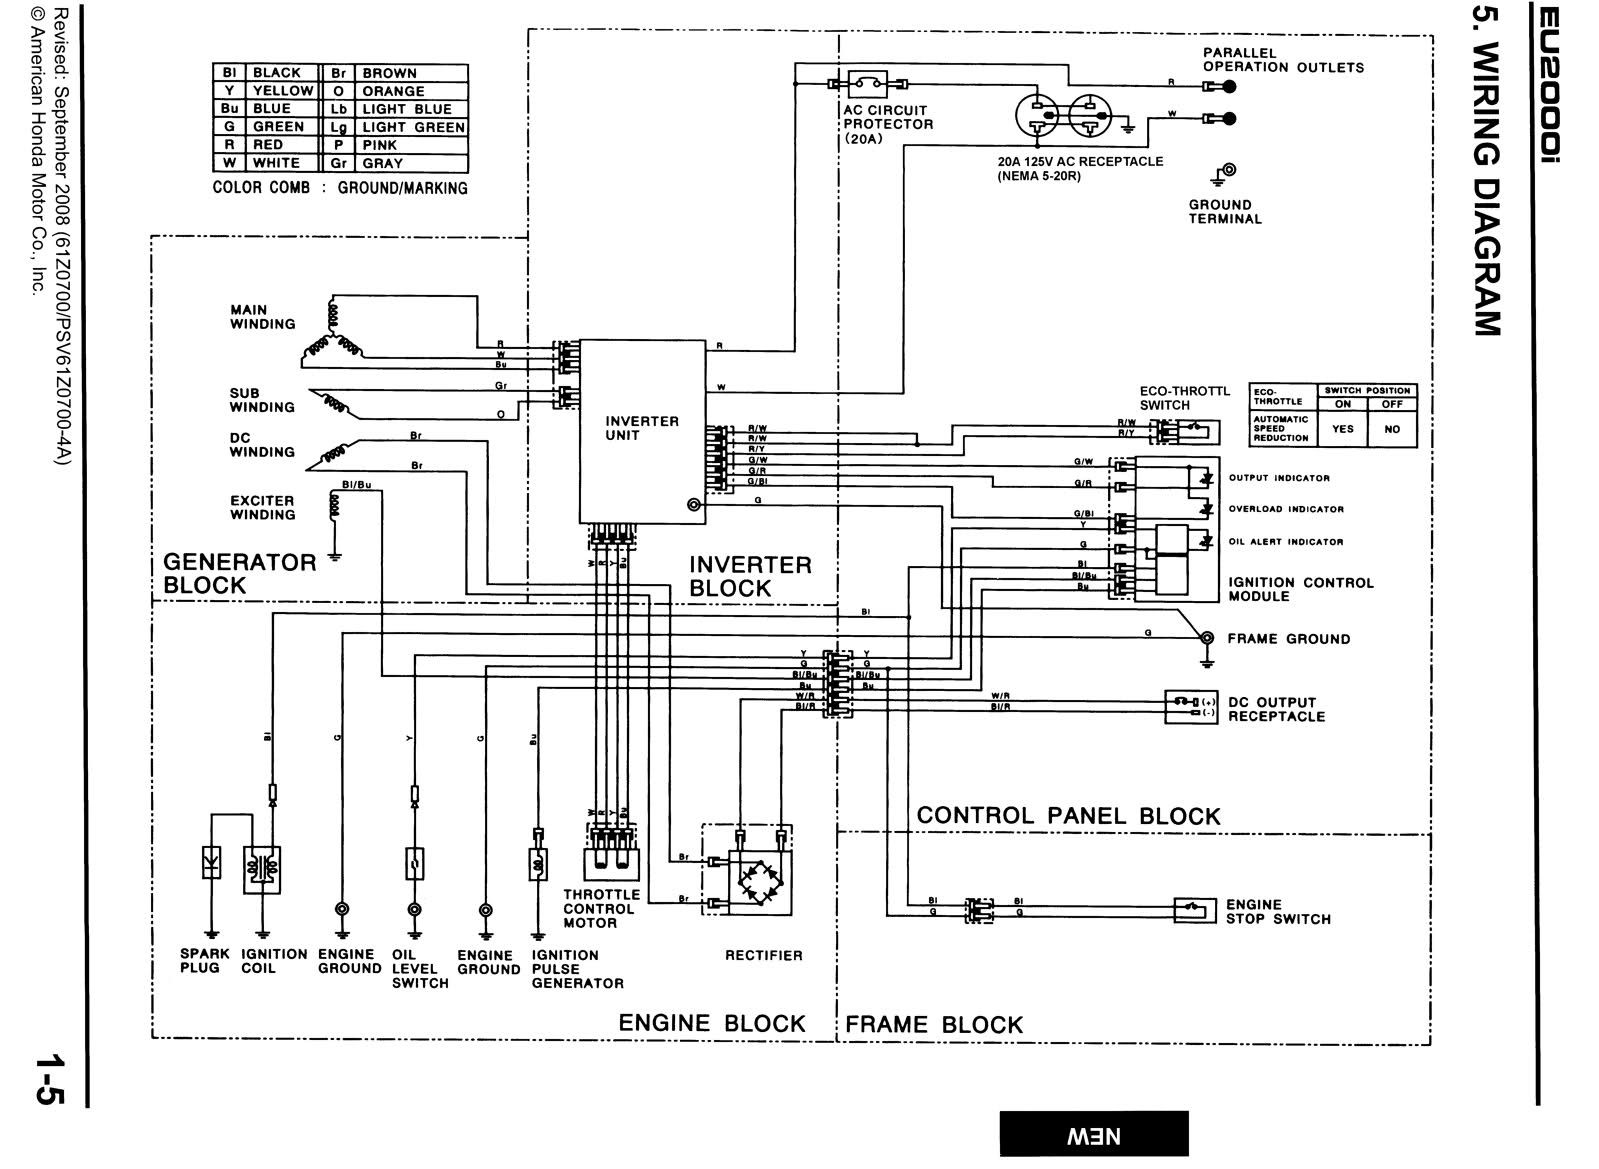 Weekend Warrior Wiring Diagram Boiler Wiring Diagrams Dumble Nescafe Jeanjaures37 Fr